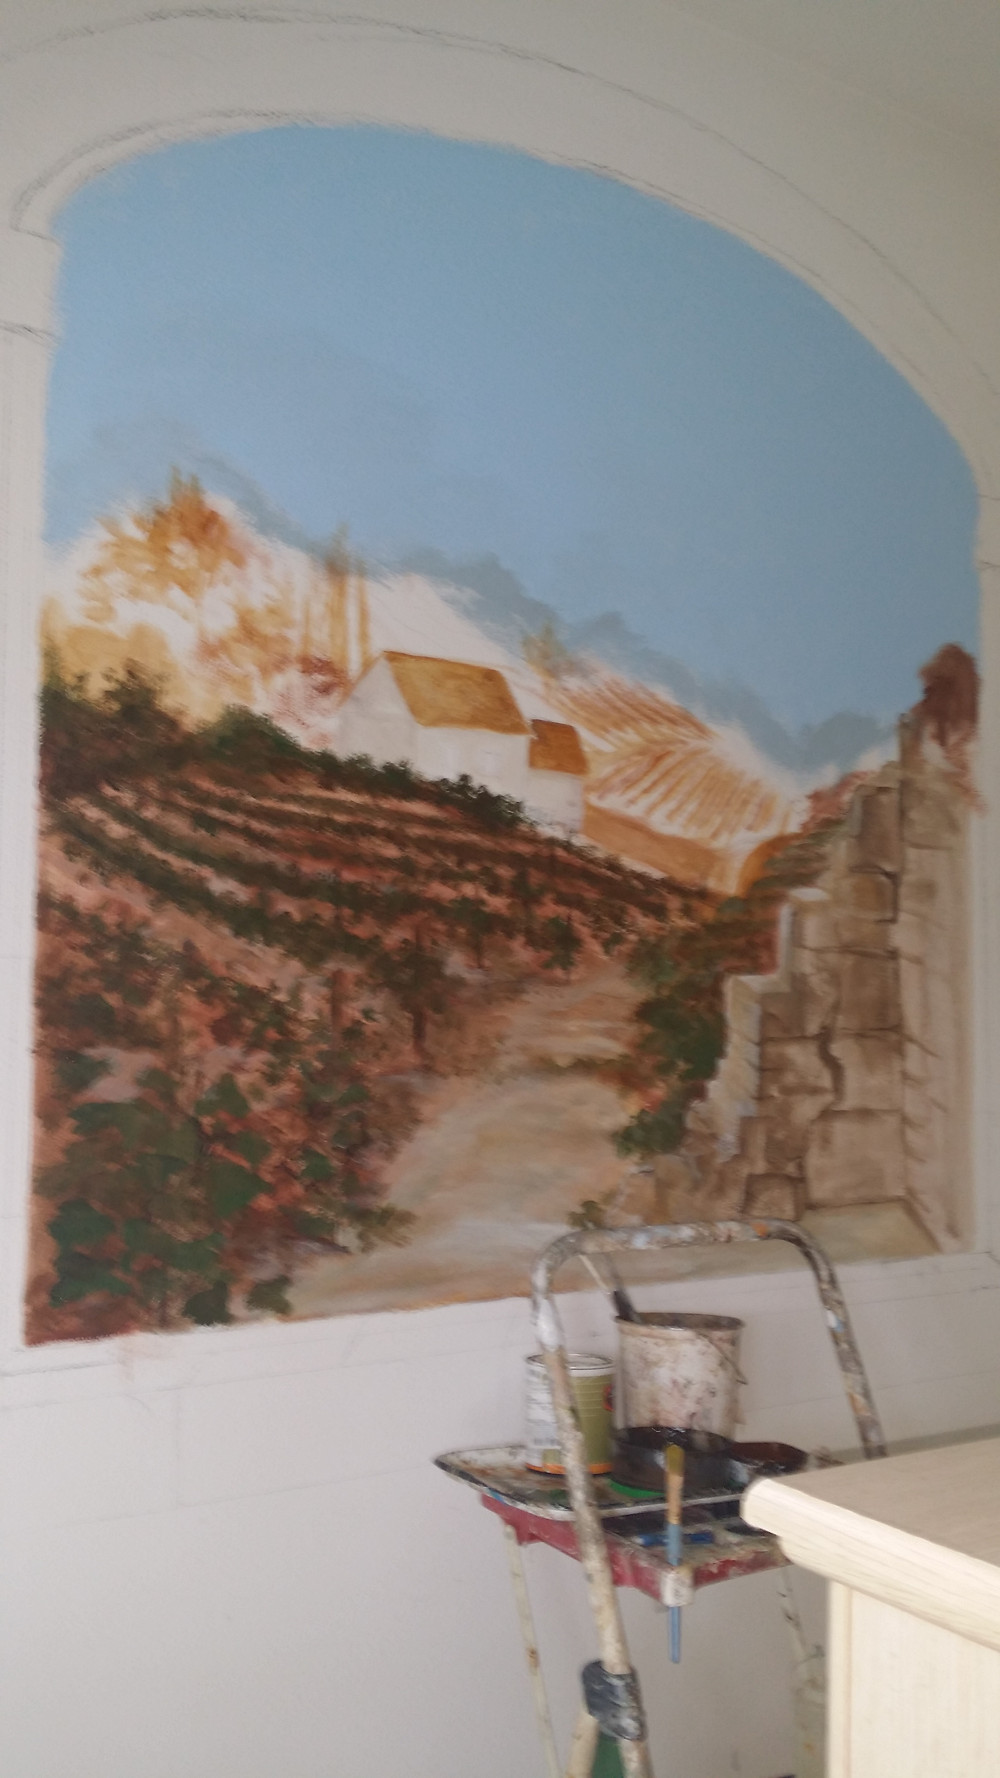 Day 1 of Tuscany Mural